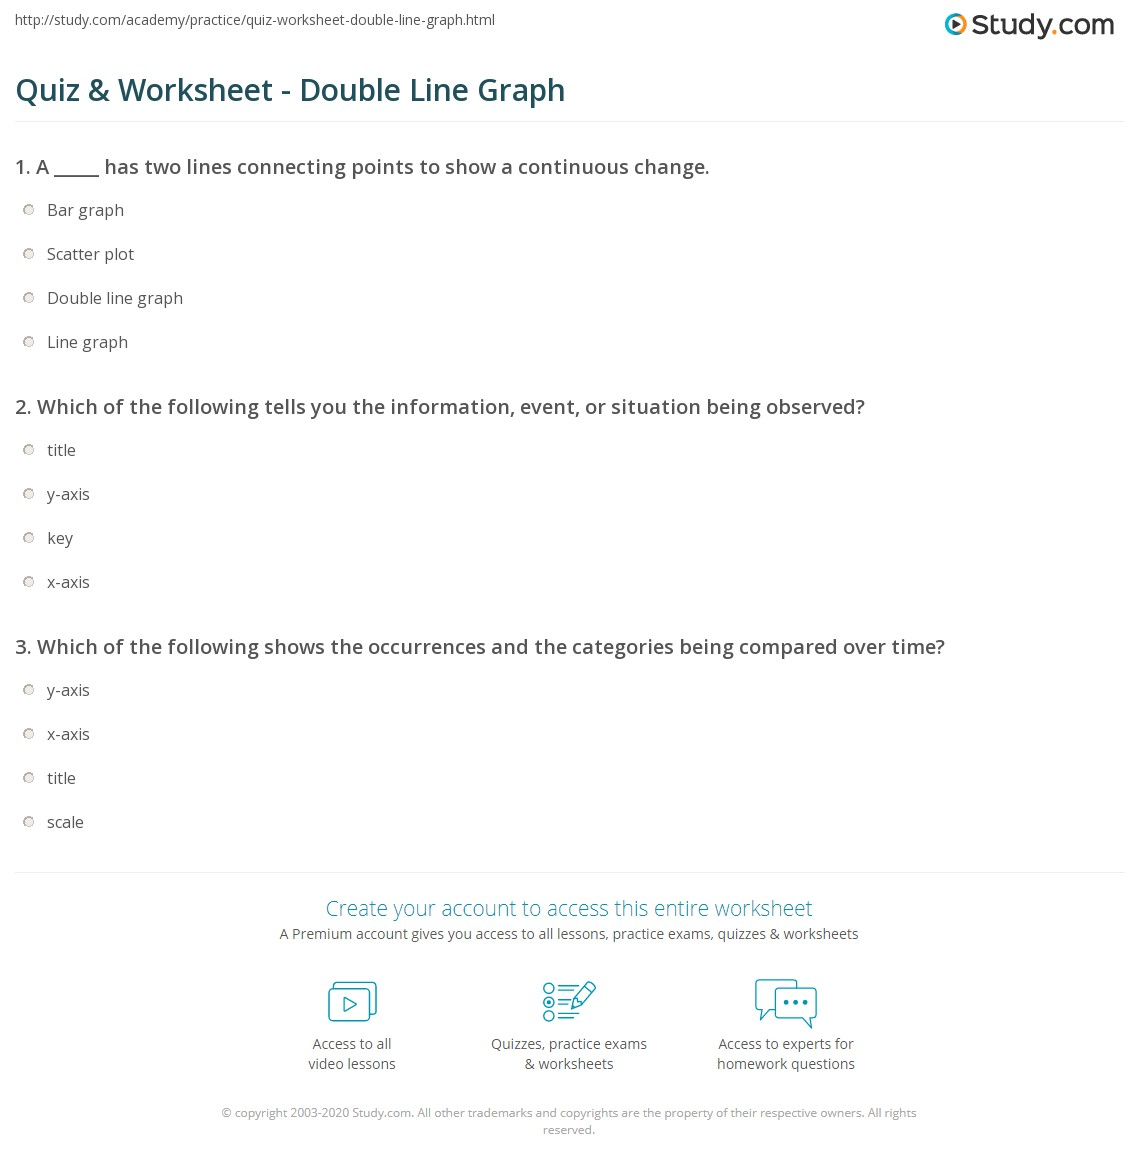 Worksheet Double Line Graph Worksheets Grass Fedjp